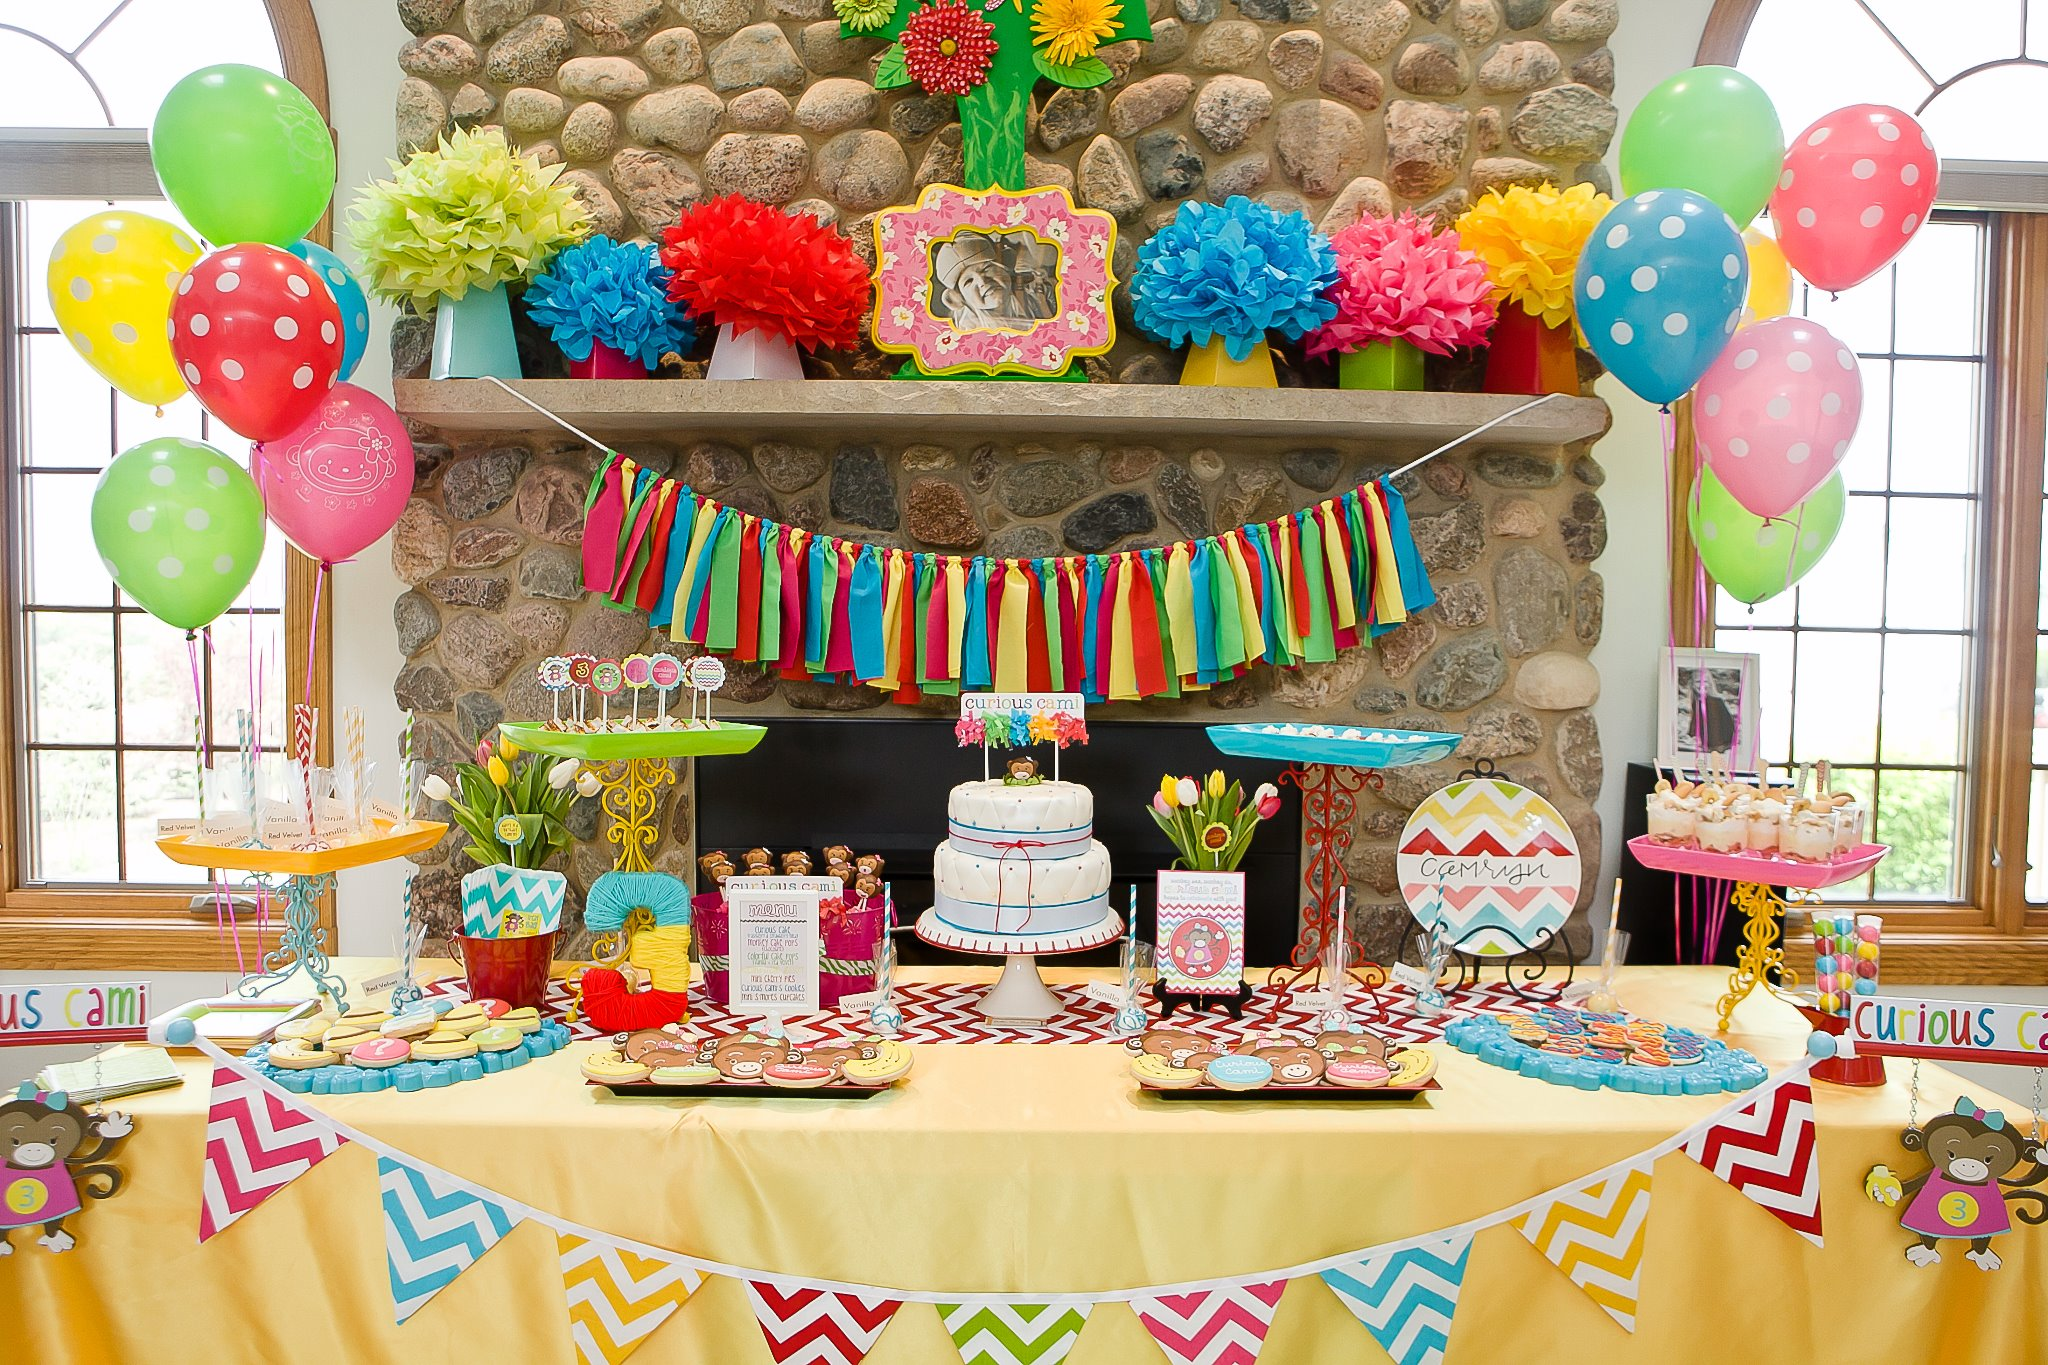 Throwing a party get a party planner assistant the for Event planning ideas parties